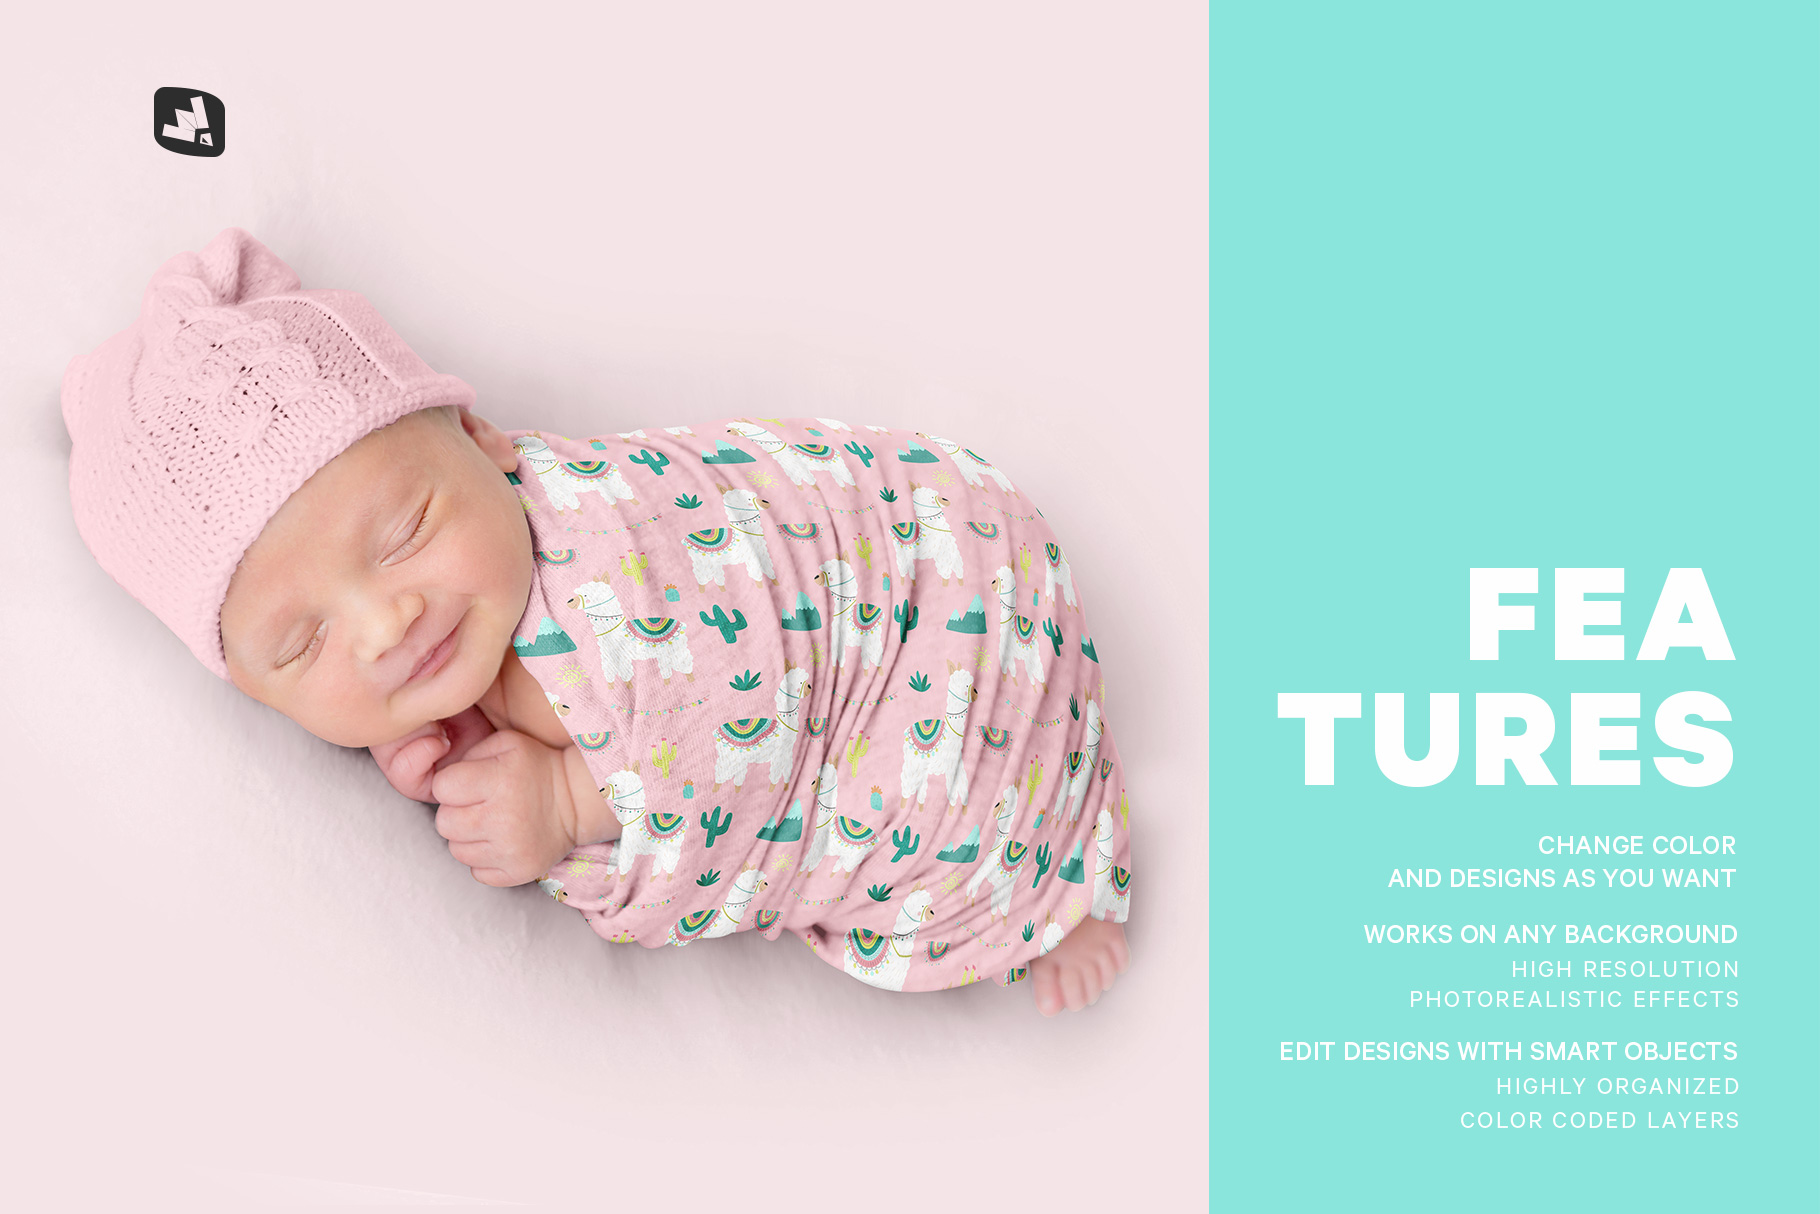 features of the newborn swaddle blanket mockup